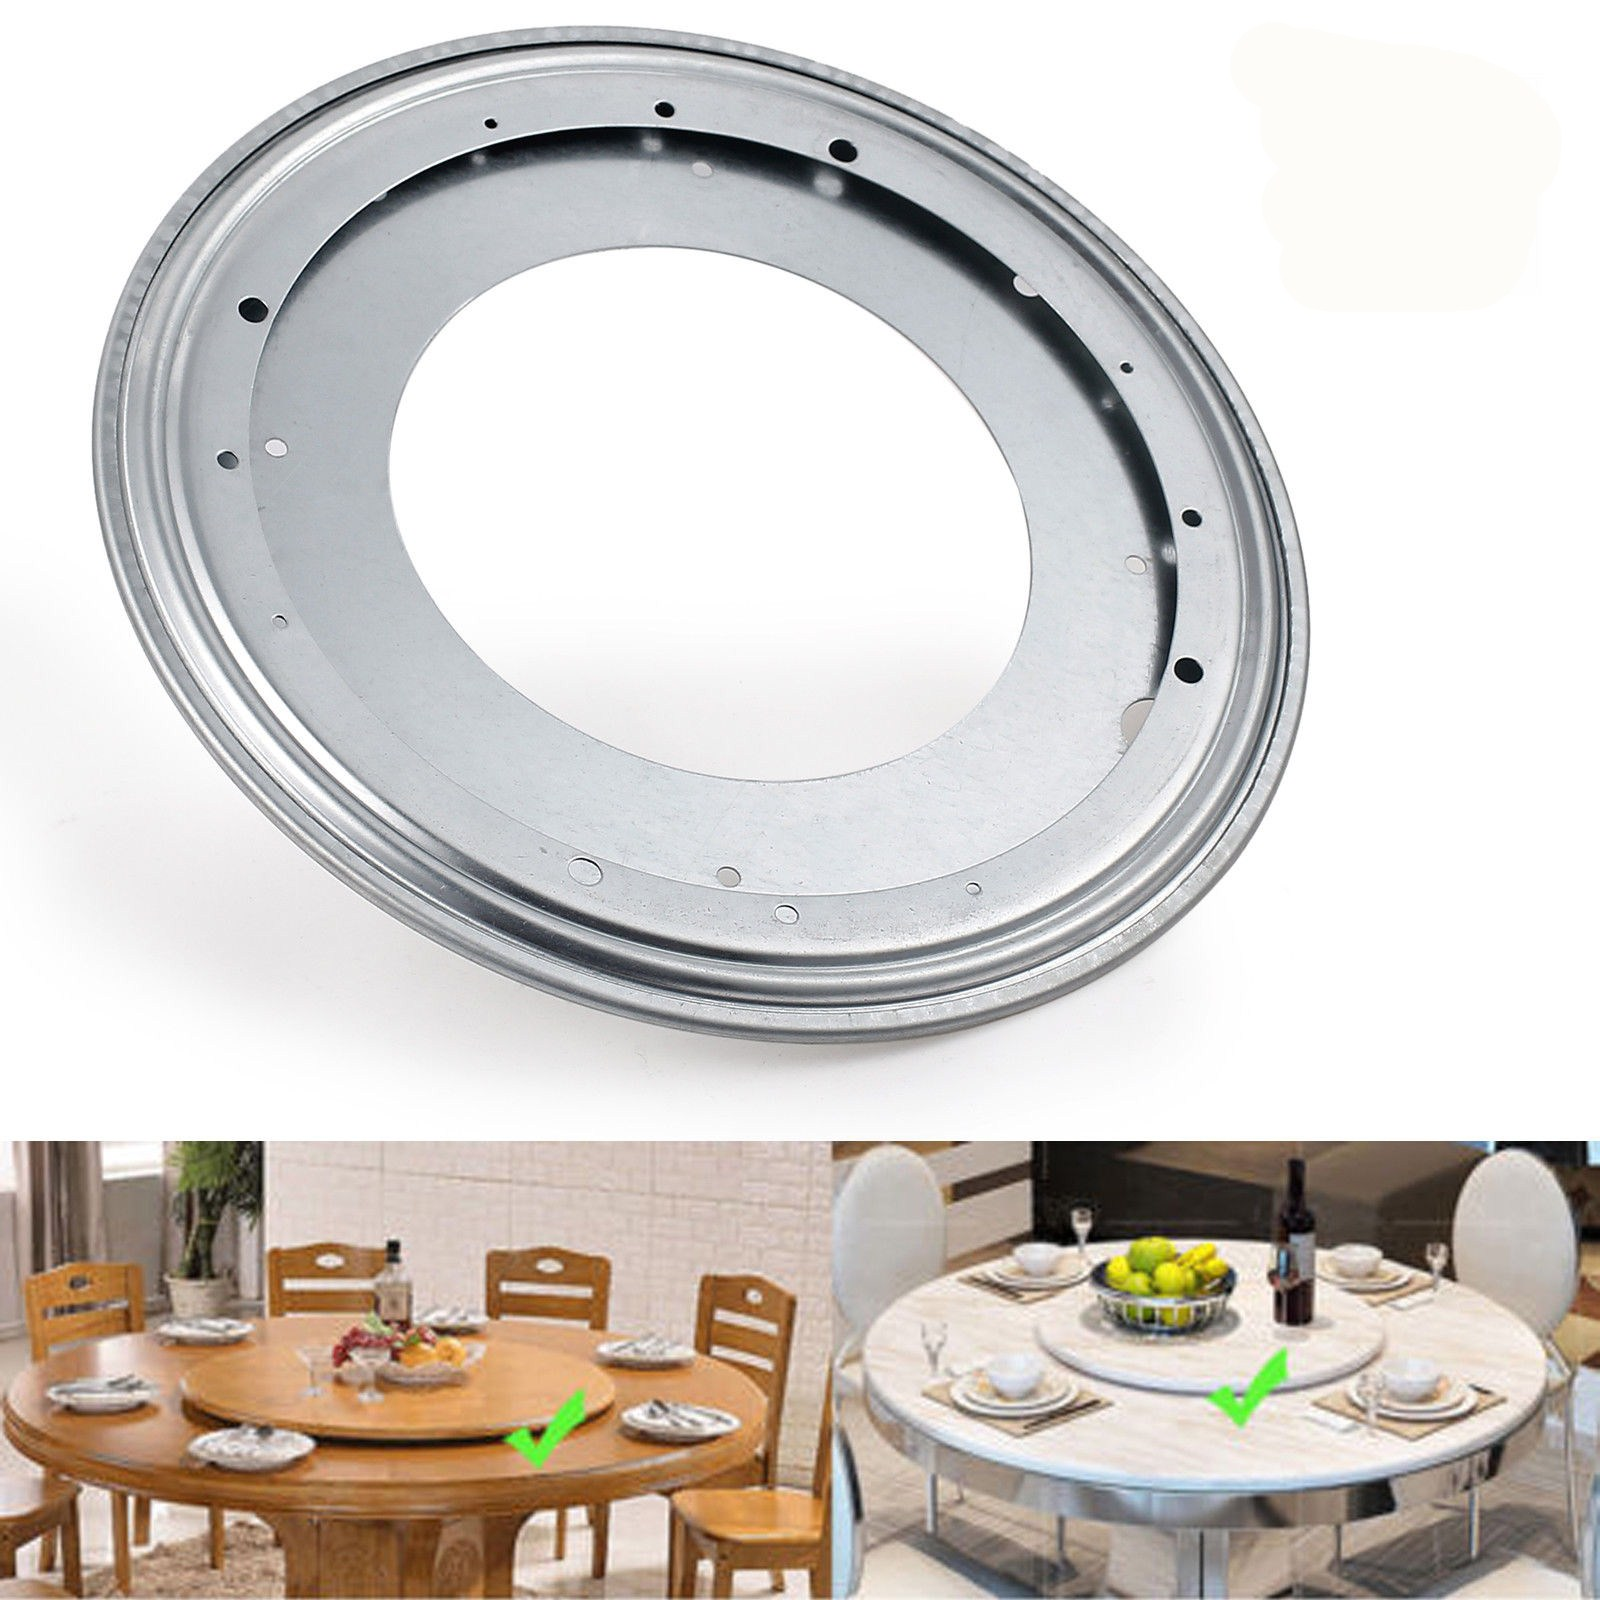 12 Inch Heavy Duty Lazy Susan Bearing Metal Swivel Bearing Swivel Plate Round Turntable Rotating For Table Plate ...